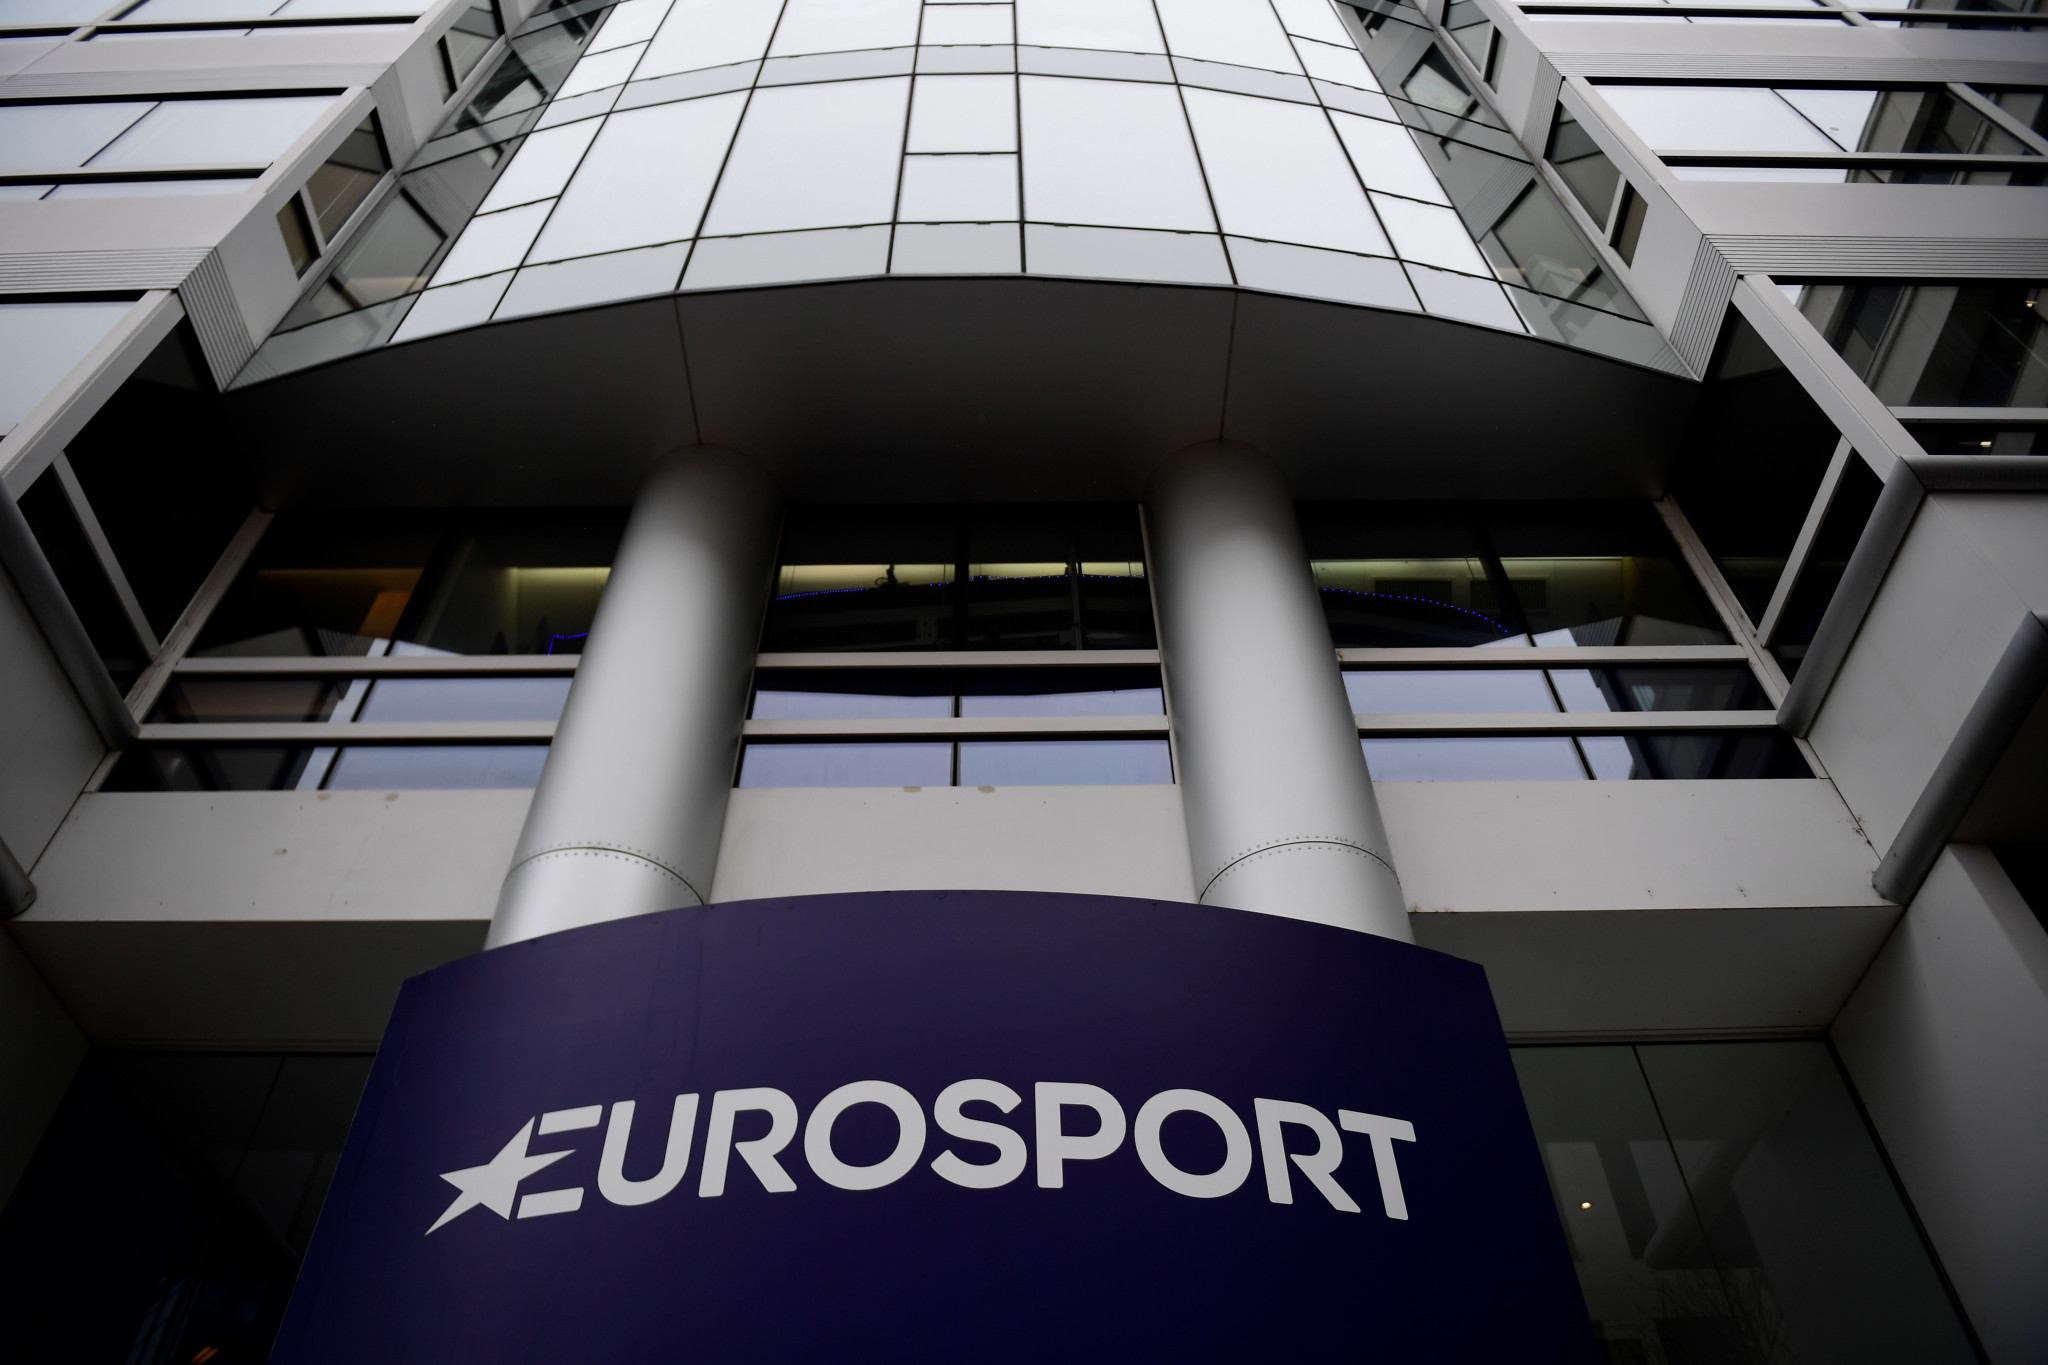 Eurosport has a wide-ranging Olympic deal running until Paris 2024 ©Getty Images